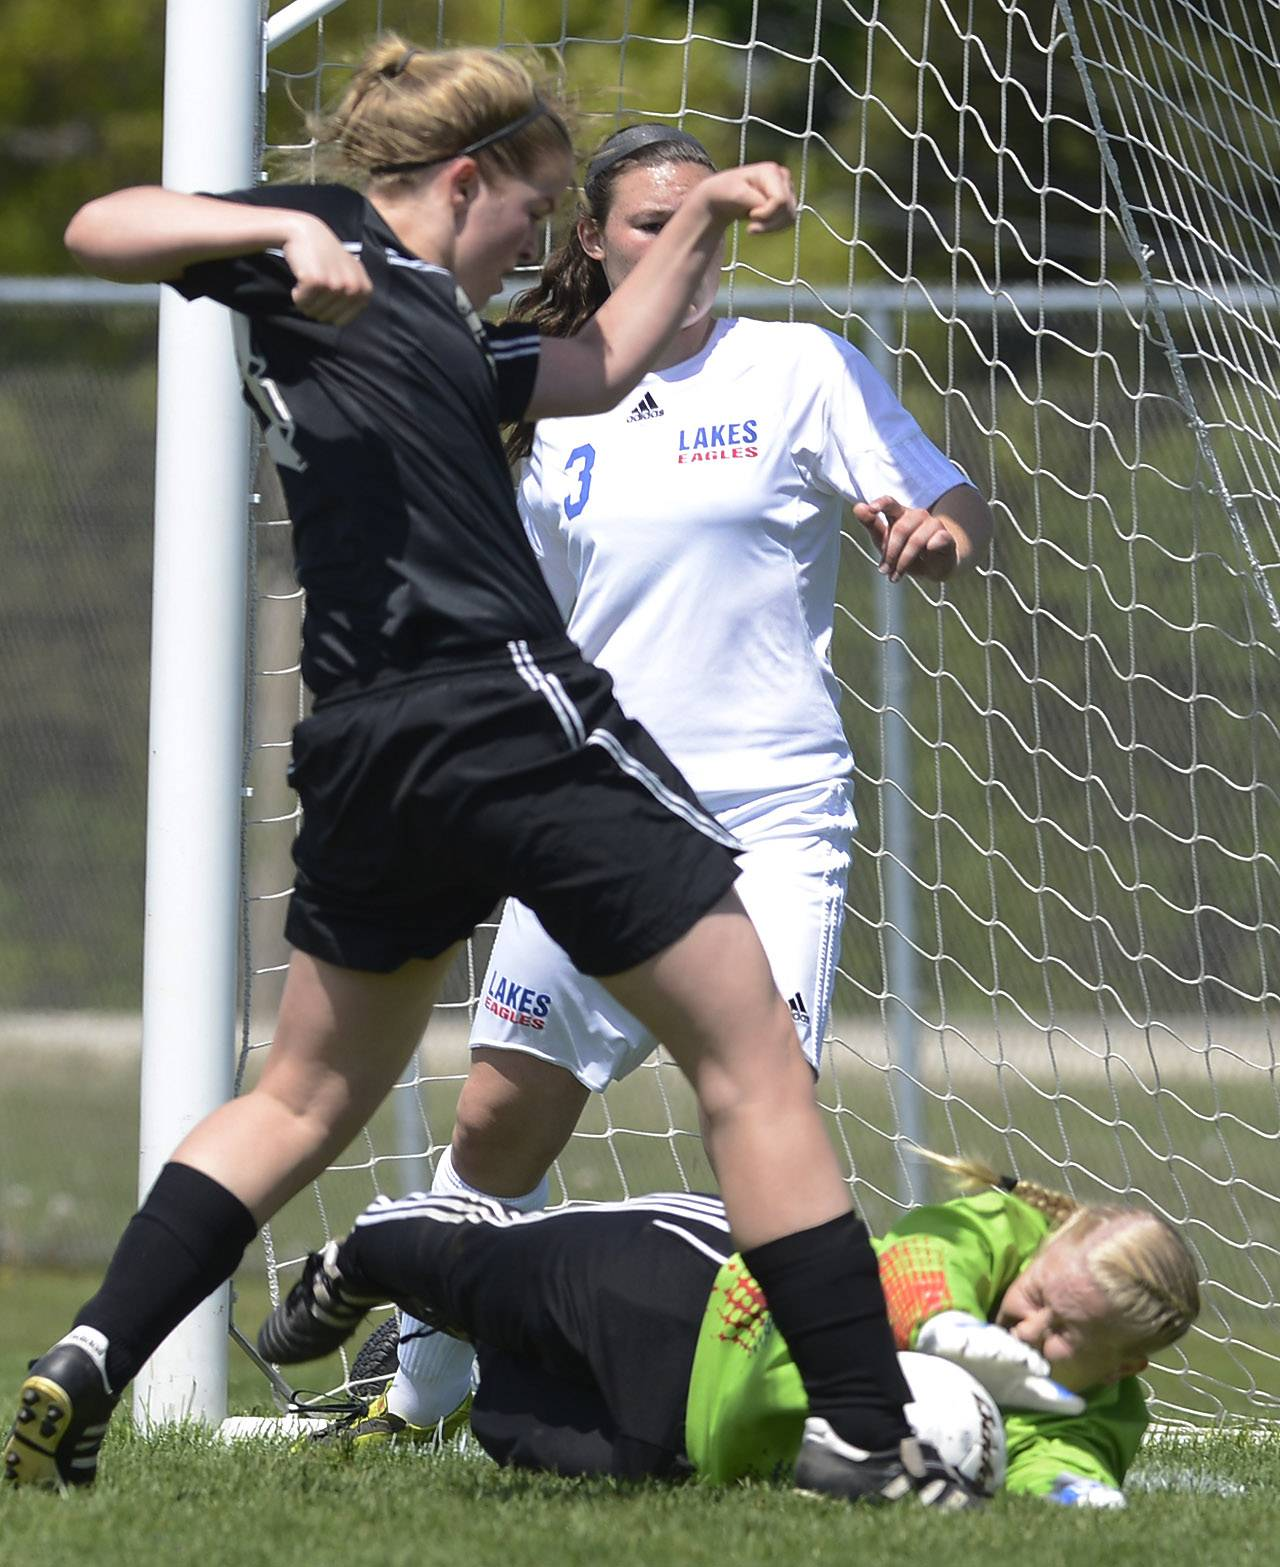 Megan Walsh of Prairie Ridge, left, kicks the ball past Lakes goalkeeper Kara Jones for a first-half goal during the Class 2A regional final at Lakes on Saturday.